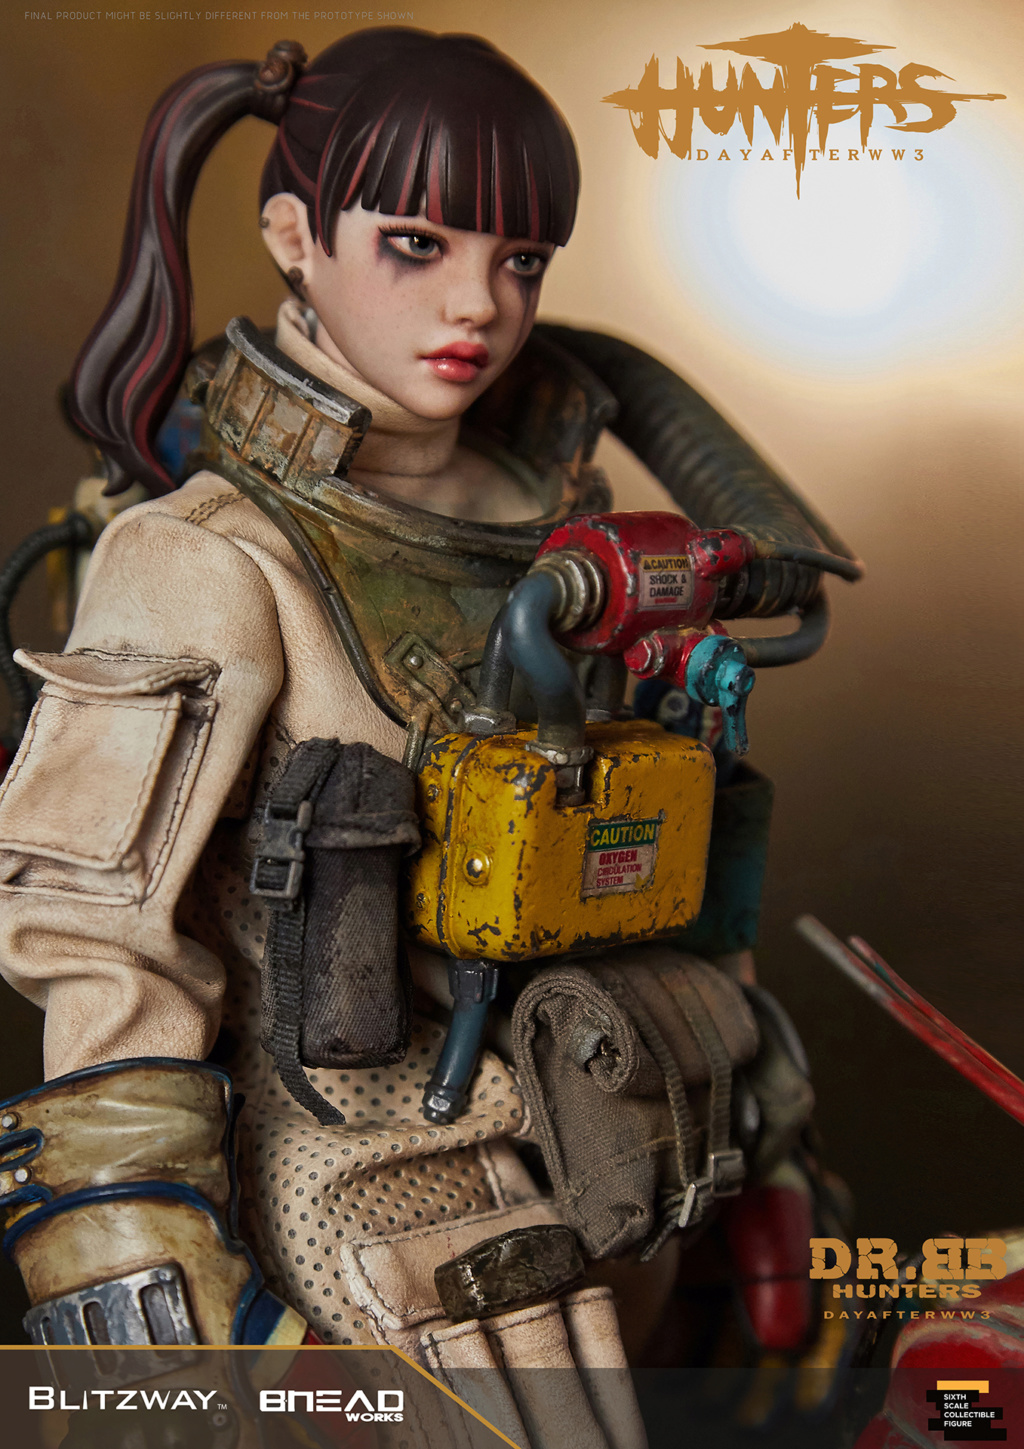 Robot - NEW PRODUCT: Blitzway: 1/6 scale HUNTERS : Day After WWlll: Dr.BB Action Figure 10247